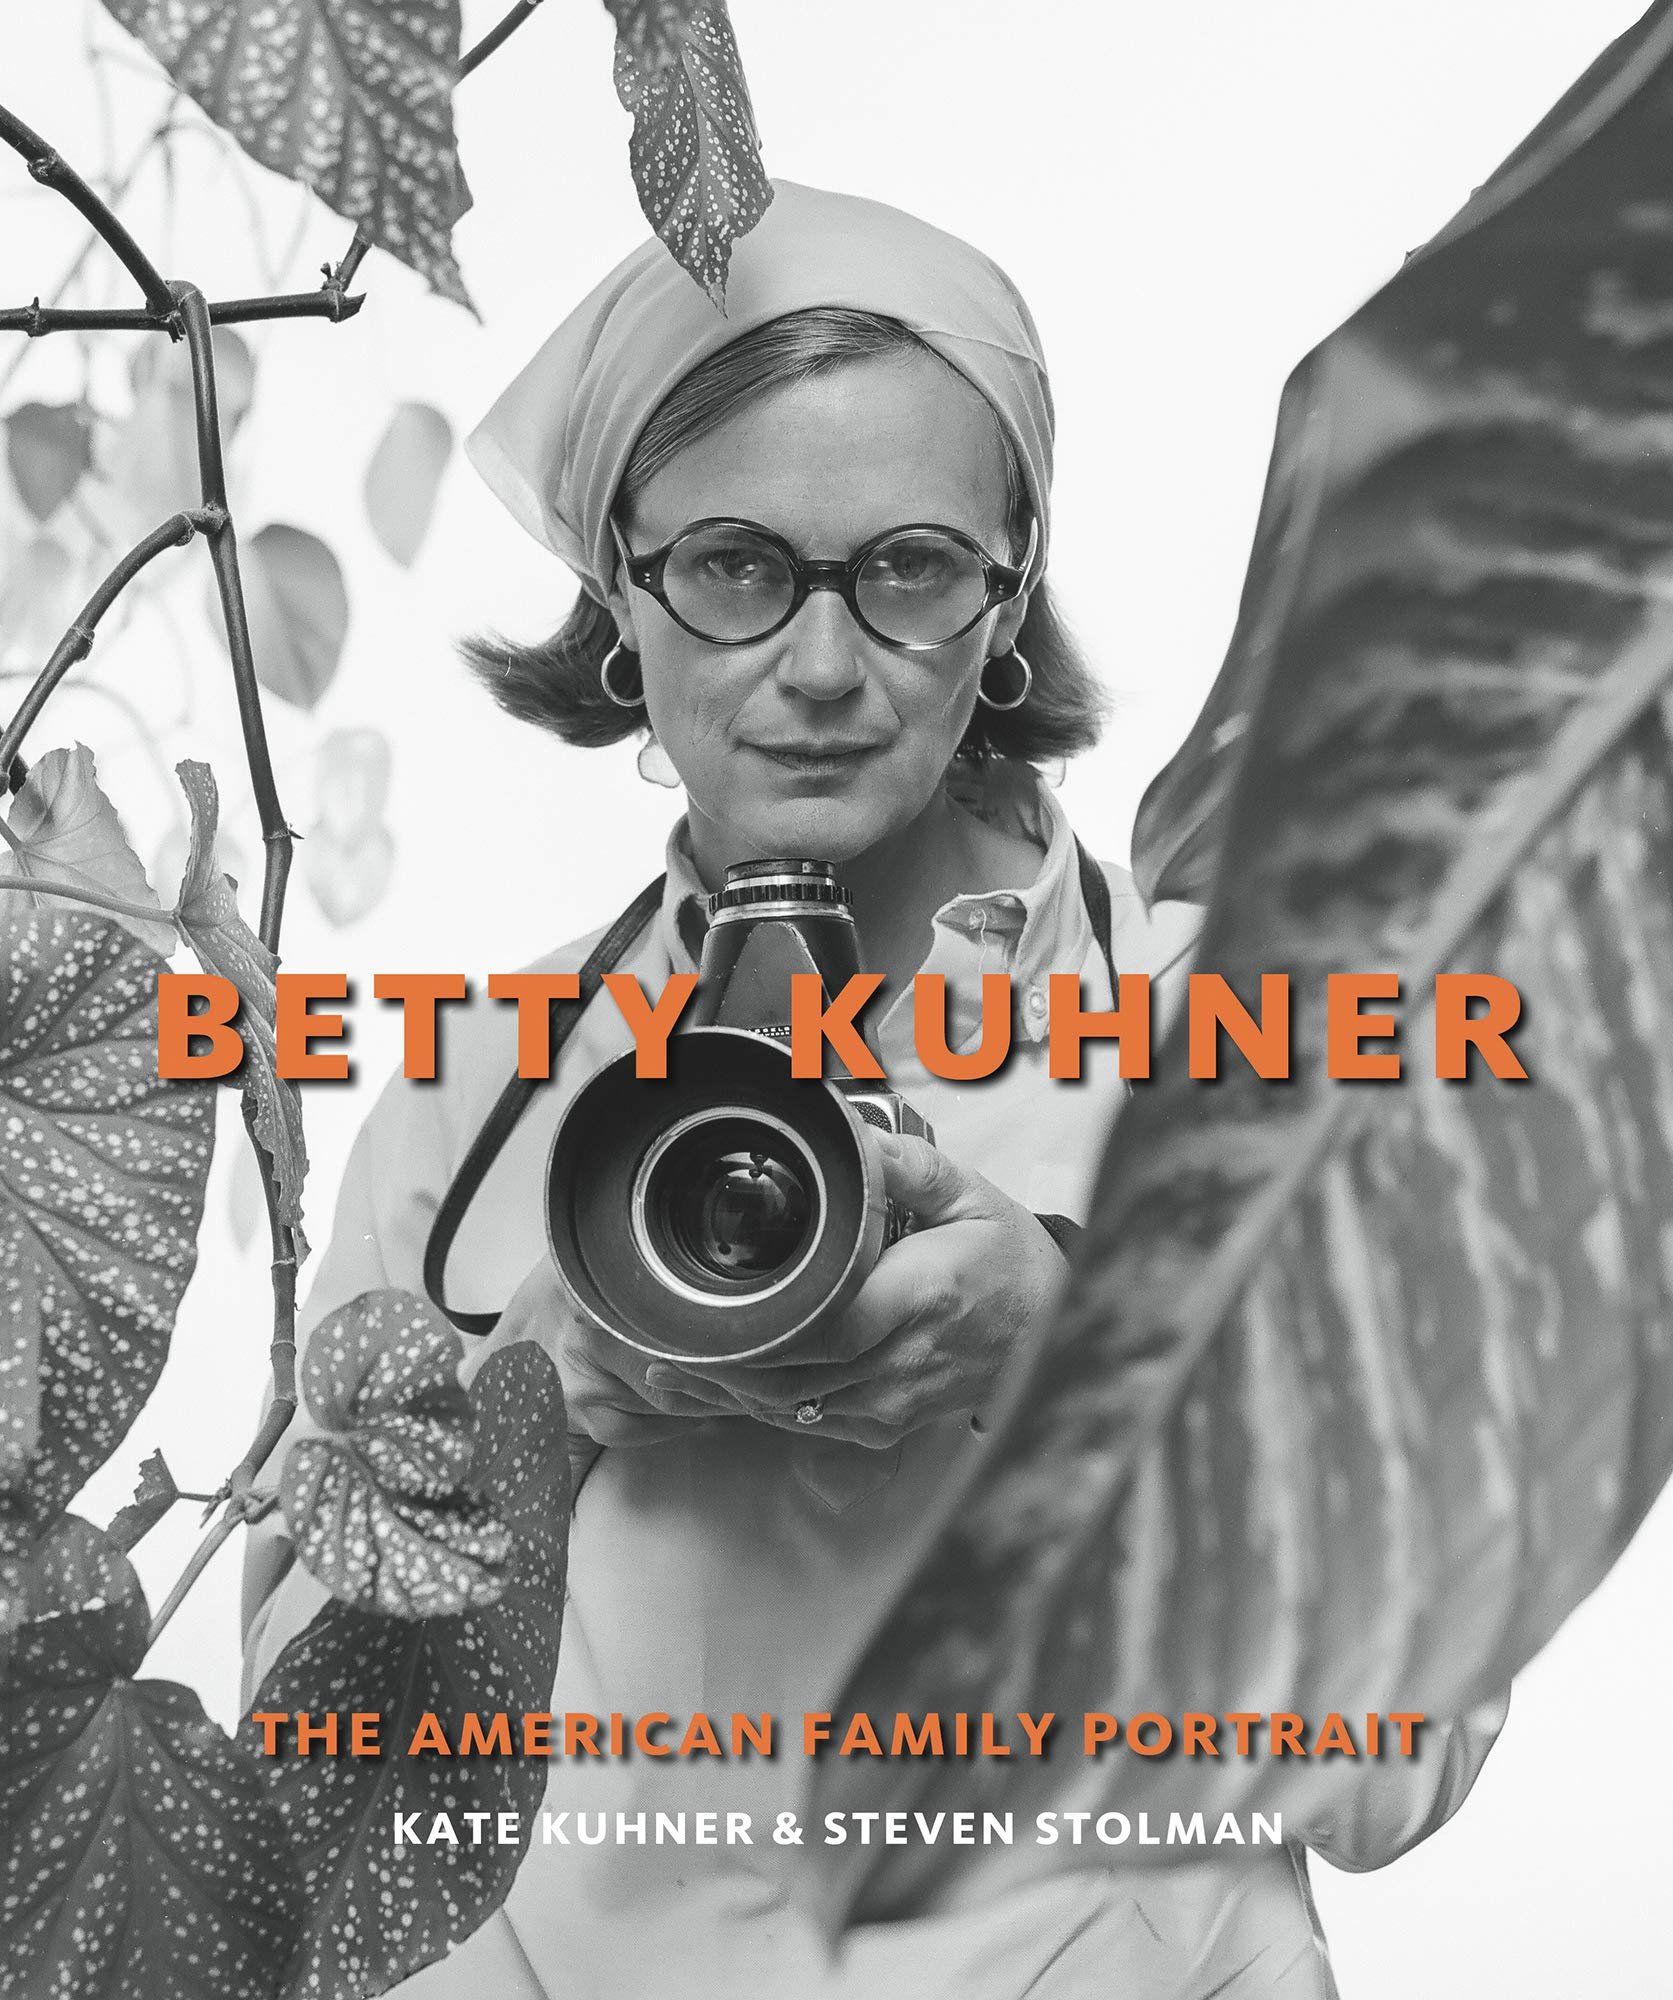 The Groundbreaking Photography of Betty Kuhner